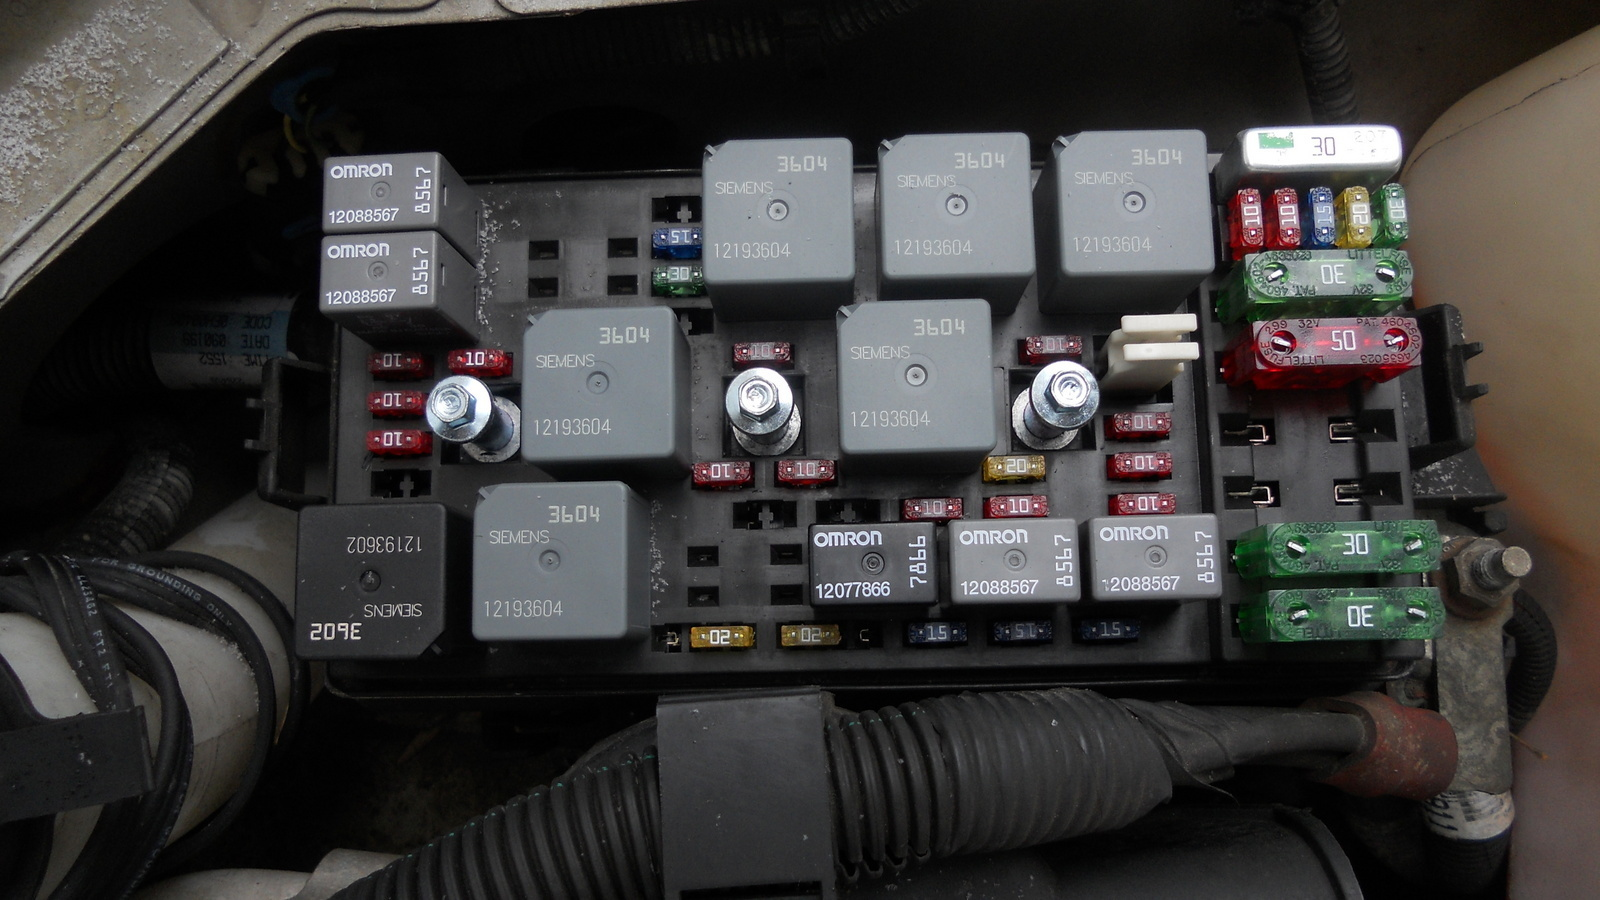 2014 Silverado Fuse Box Diagram Wiring Library C1500 Buick Lesabre Questions How Do You Get To The Under Rh Cargurus Com